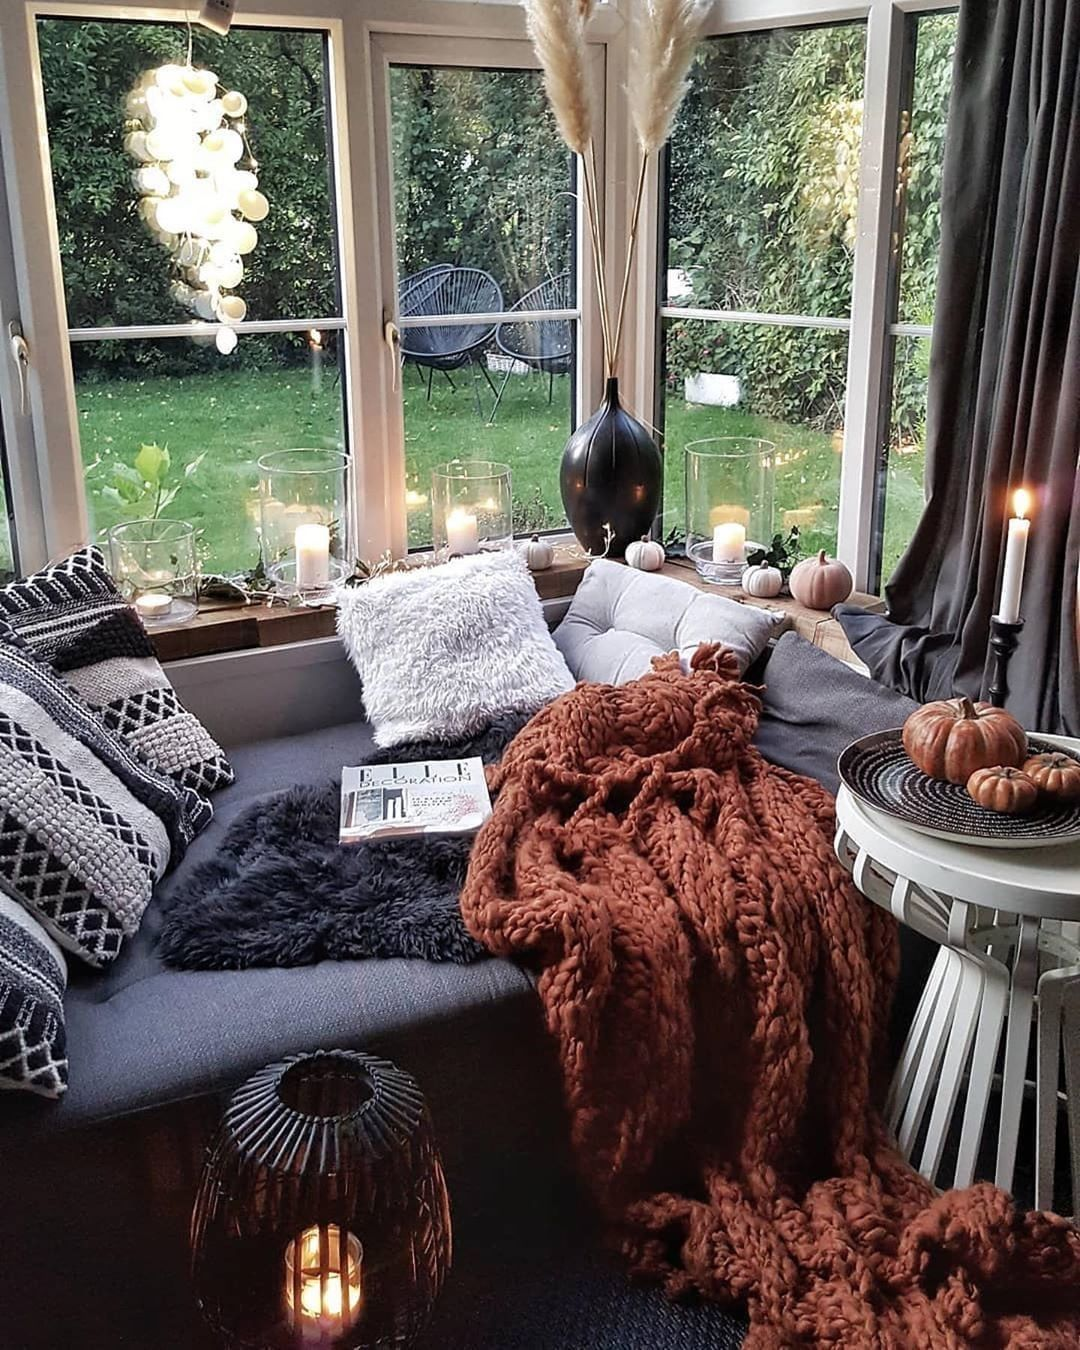 Some Facts About Home Improvement Loans In 2020 Home Decor Inspiration Cozy House Home